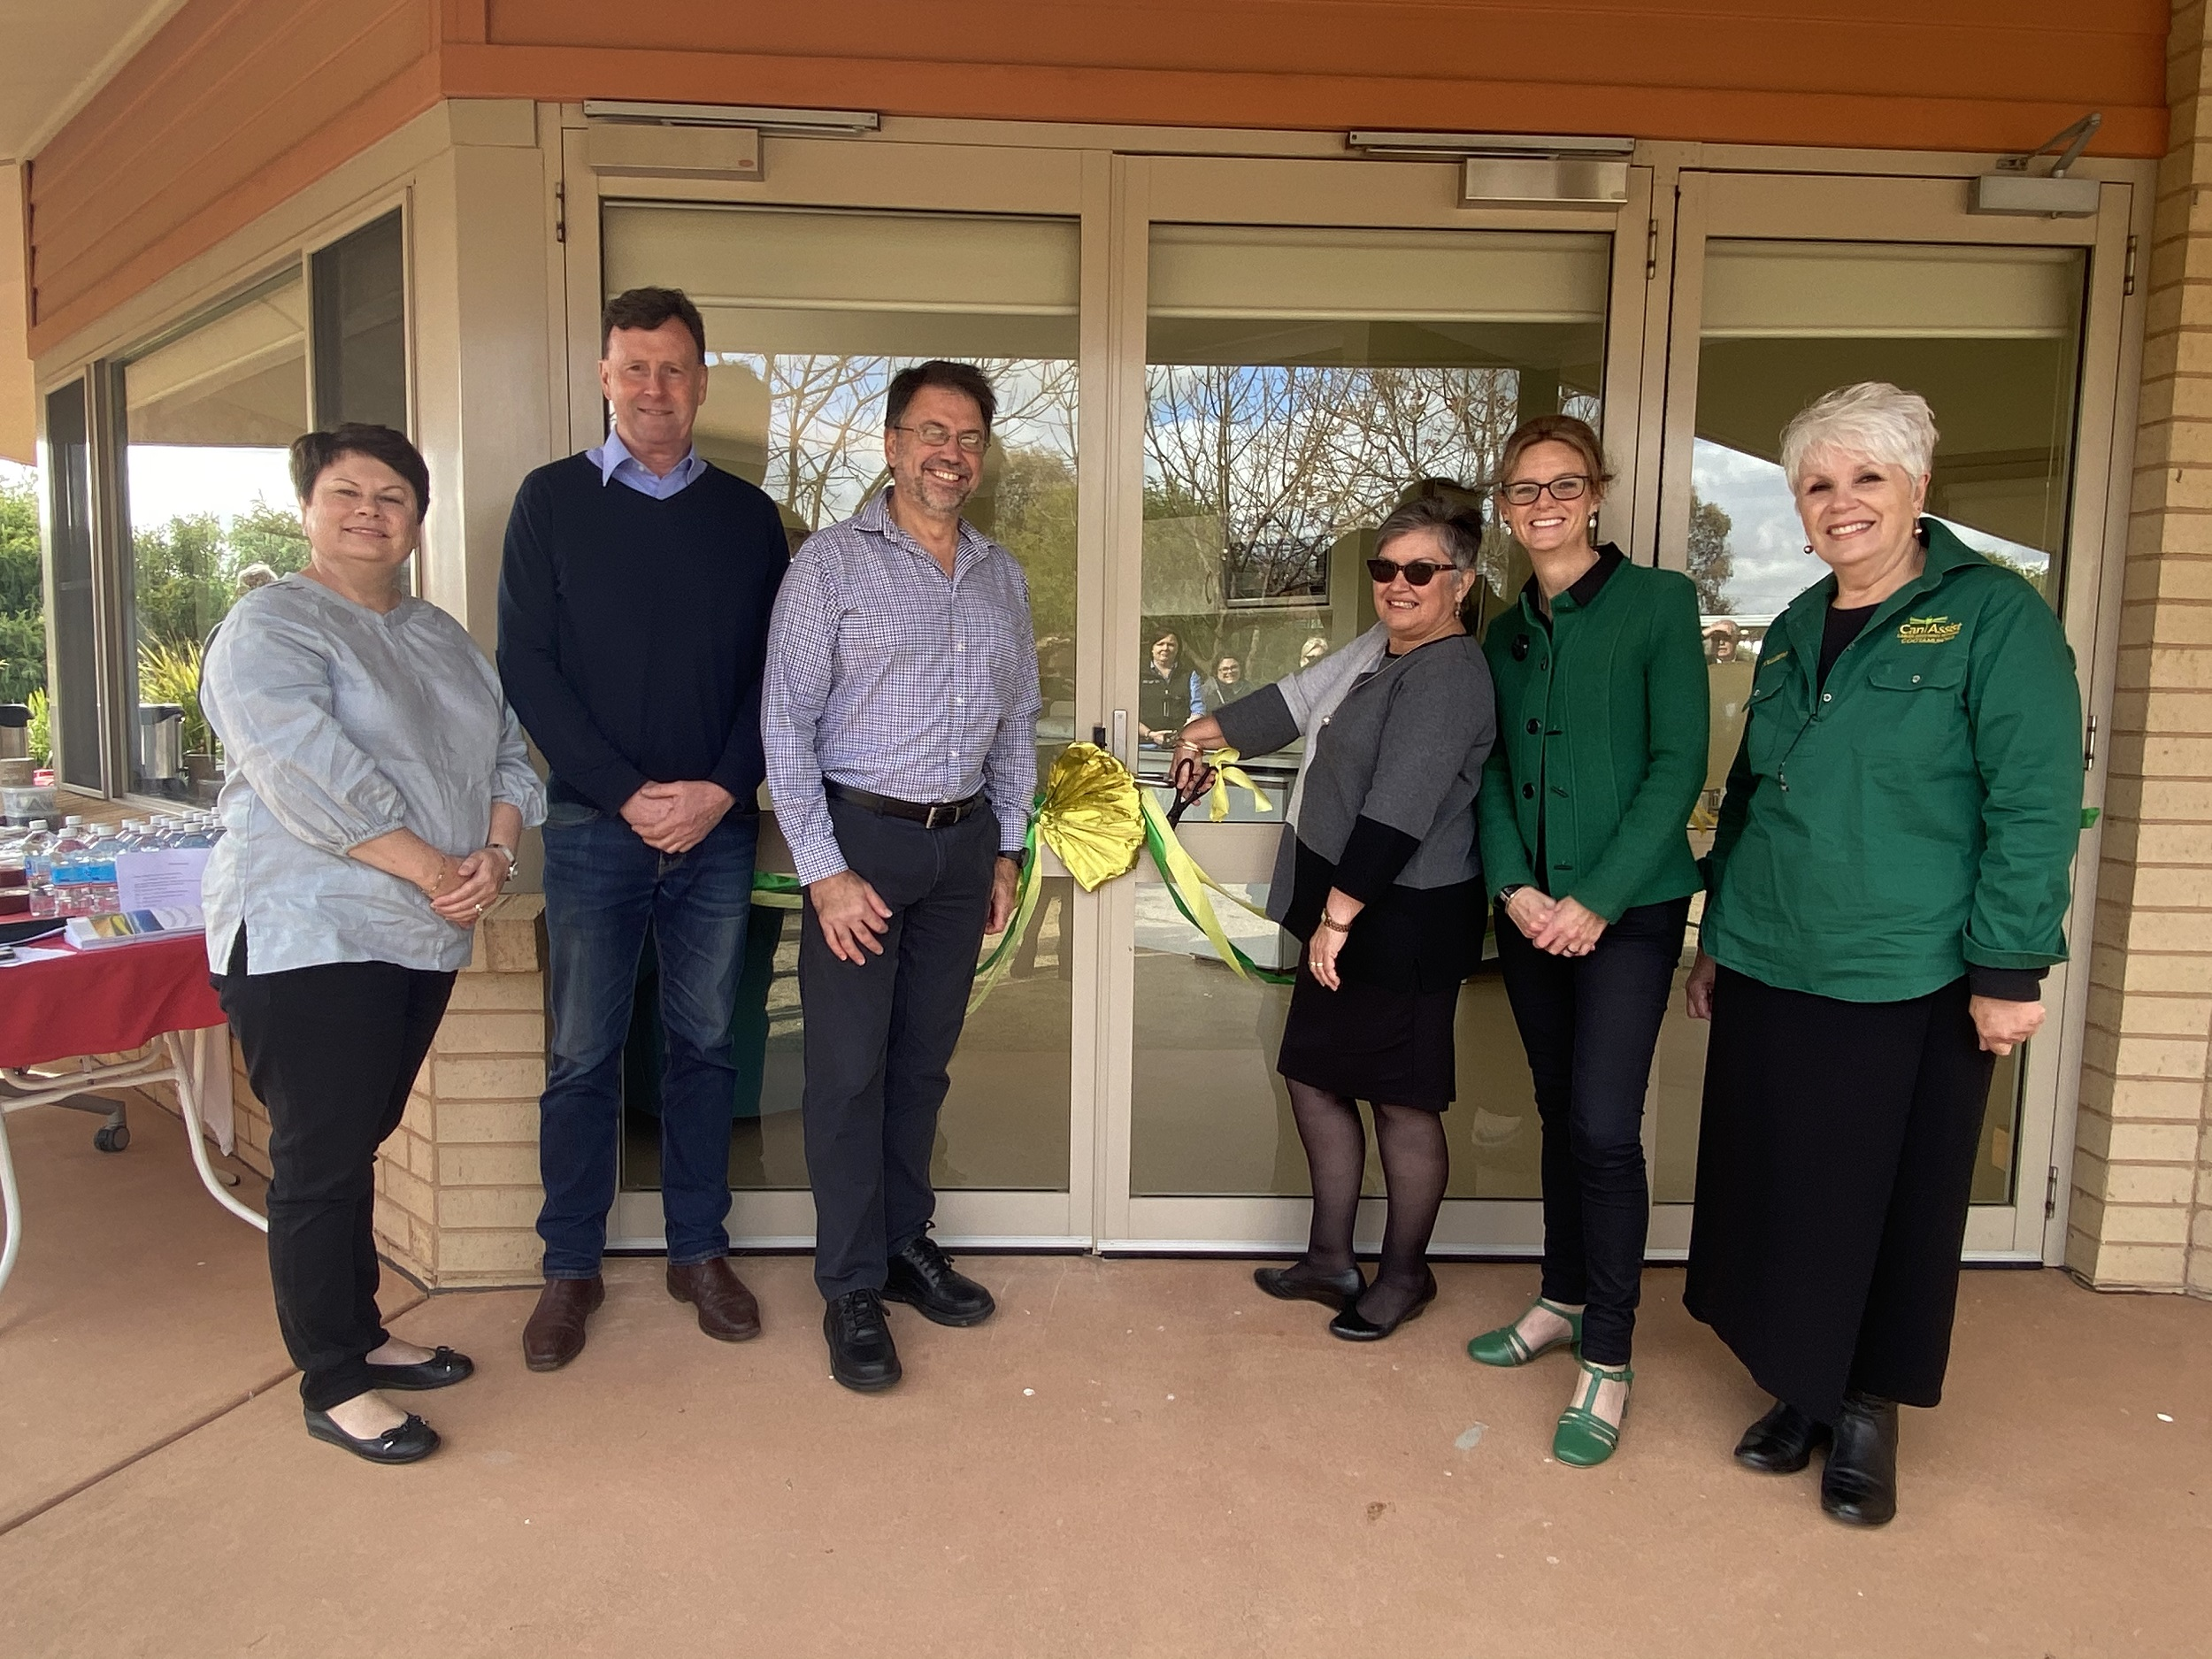 Stacey Heer, Simon Thompson, Dr Jacques Scholtz, Jennifer Apps, Steph Cooke MP and Colleen Flynn cut a green and gold ribbon on the door of the Cootamundra palliative care unit.